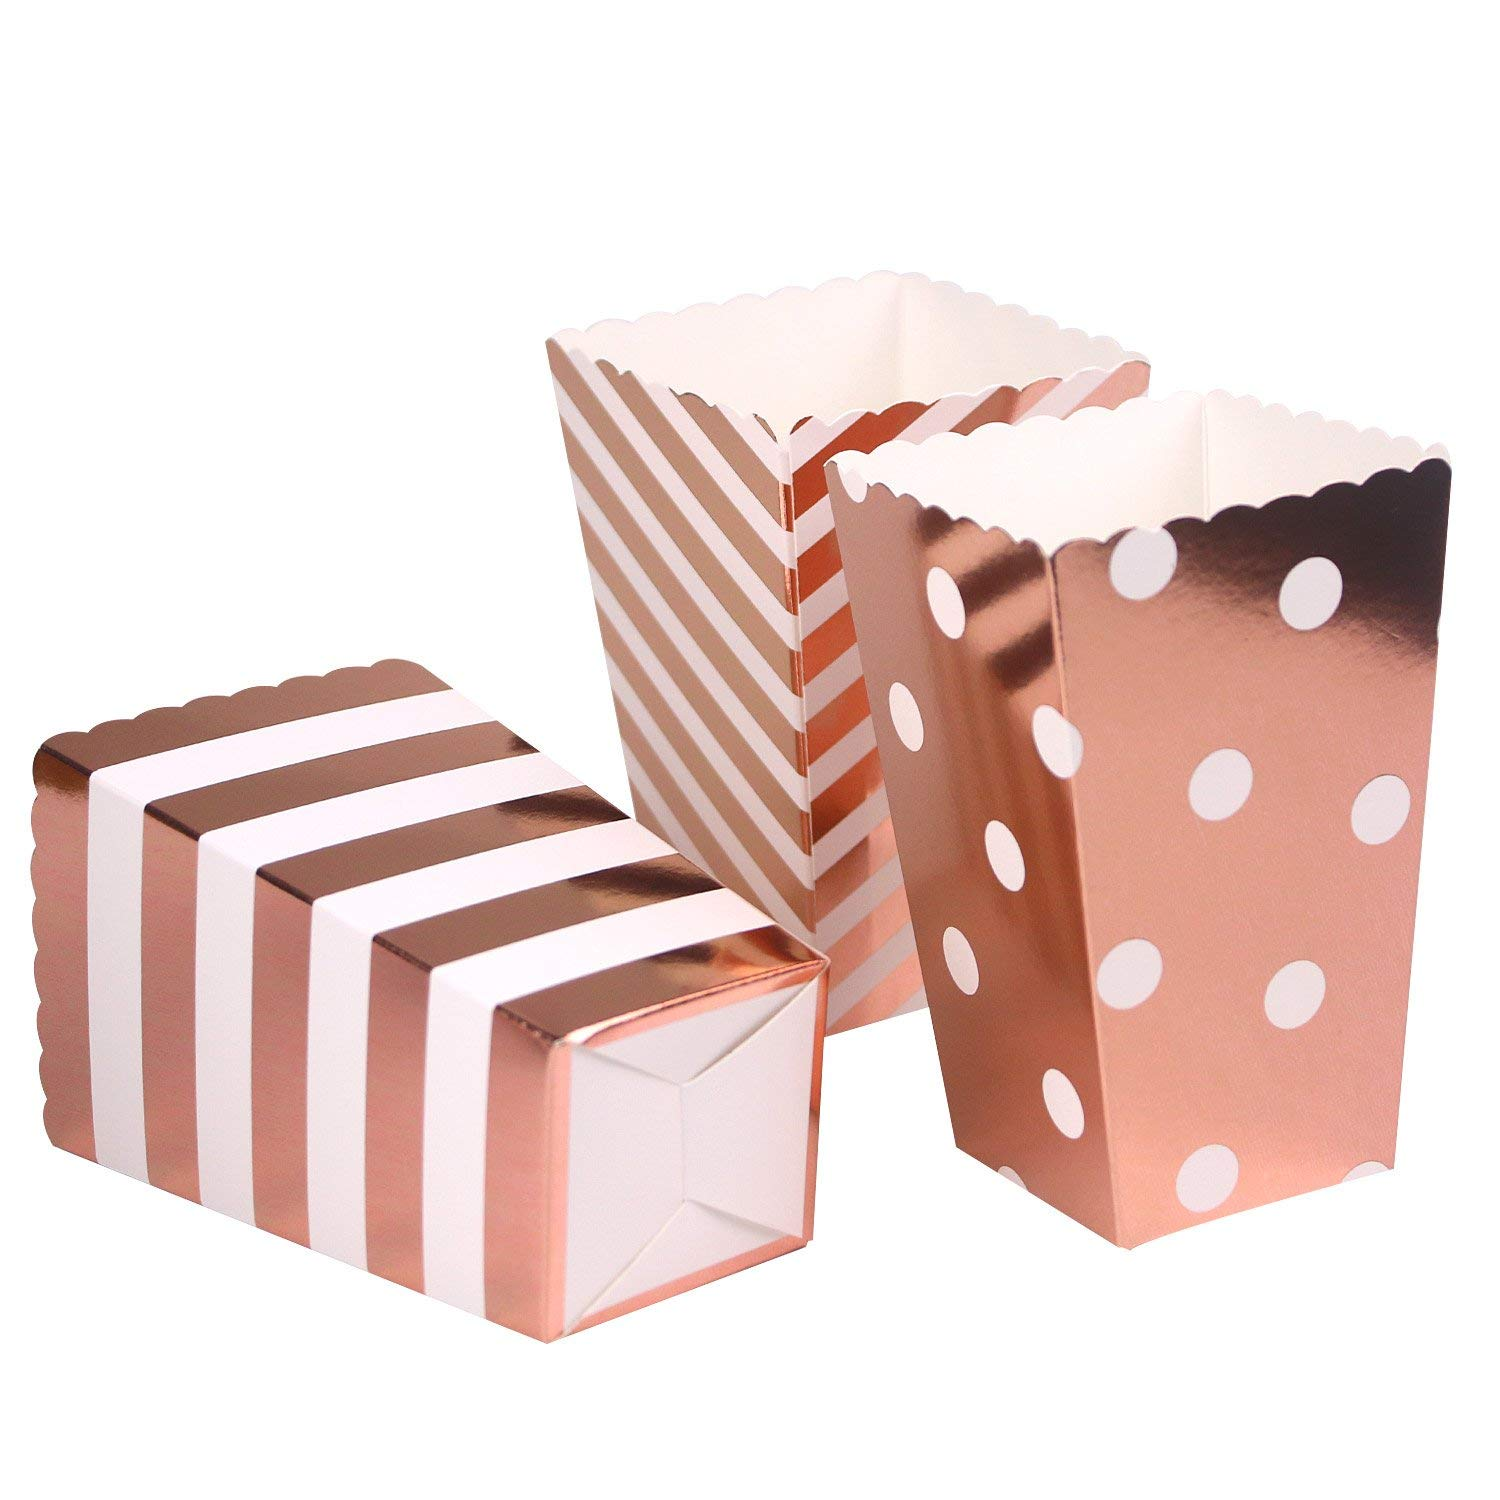 Mini Poprcorn Boxes 100 Pack Rose Gold Paper Popcorn Snack Containers Treat Box for Wedding Party Bridal Shower Birthday Movies by BALANSOHO (Image #3)